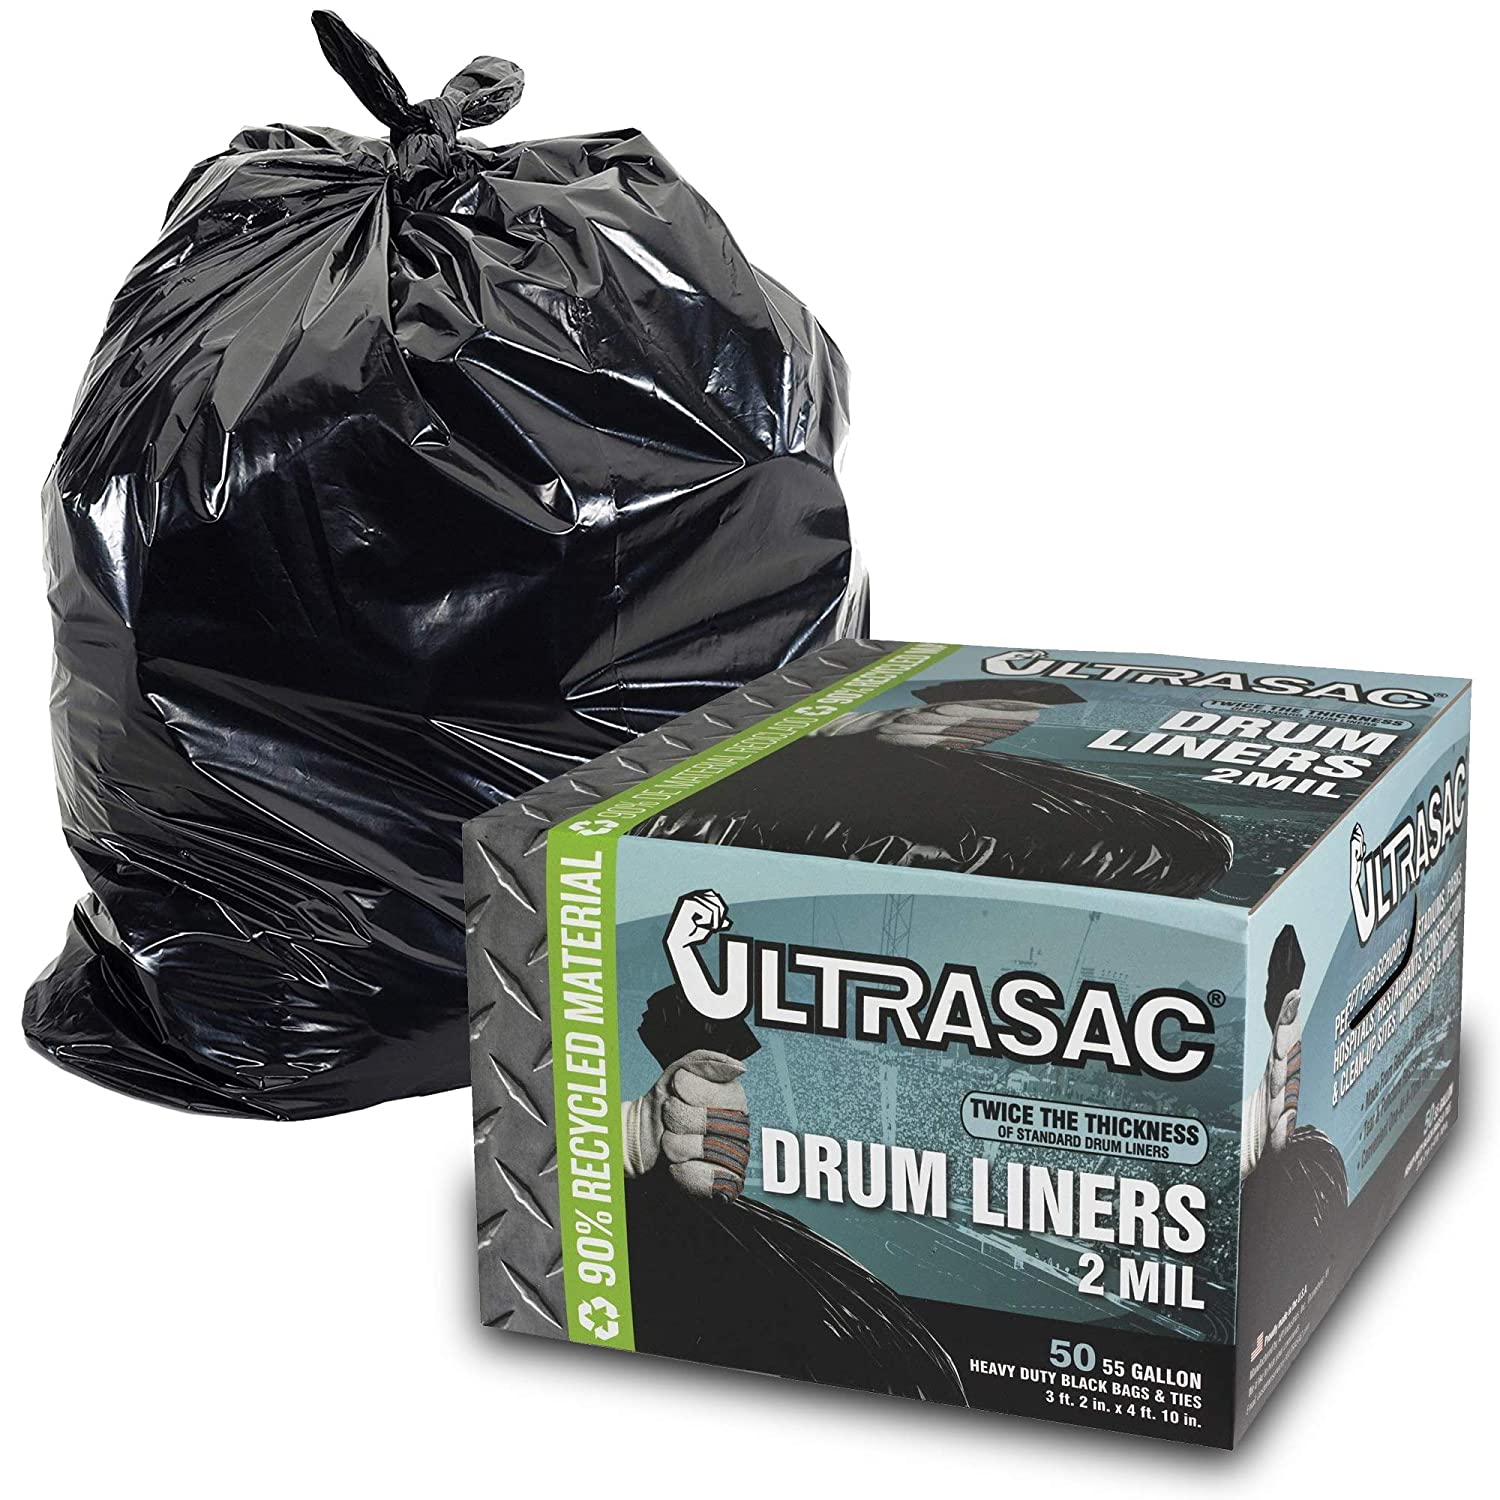 Aluf Plastics Heavy Duty 55 Gallon Trash Bags - (Large 50 Pack /w Ties) - 2 MIL Industrial Strength Plastic Drum Liners 38' x 58' Professional Black Garbage Bags for Construction, Contractors, Leaf, Yard - 796695